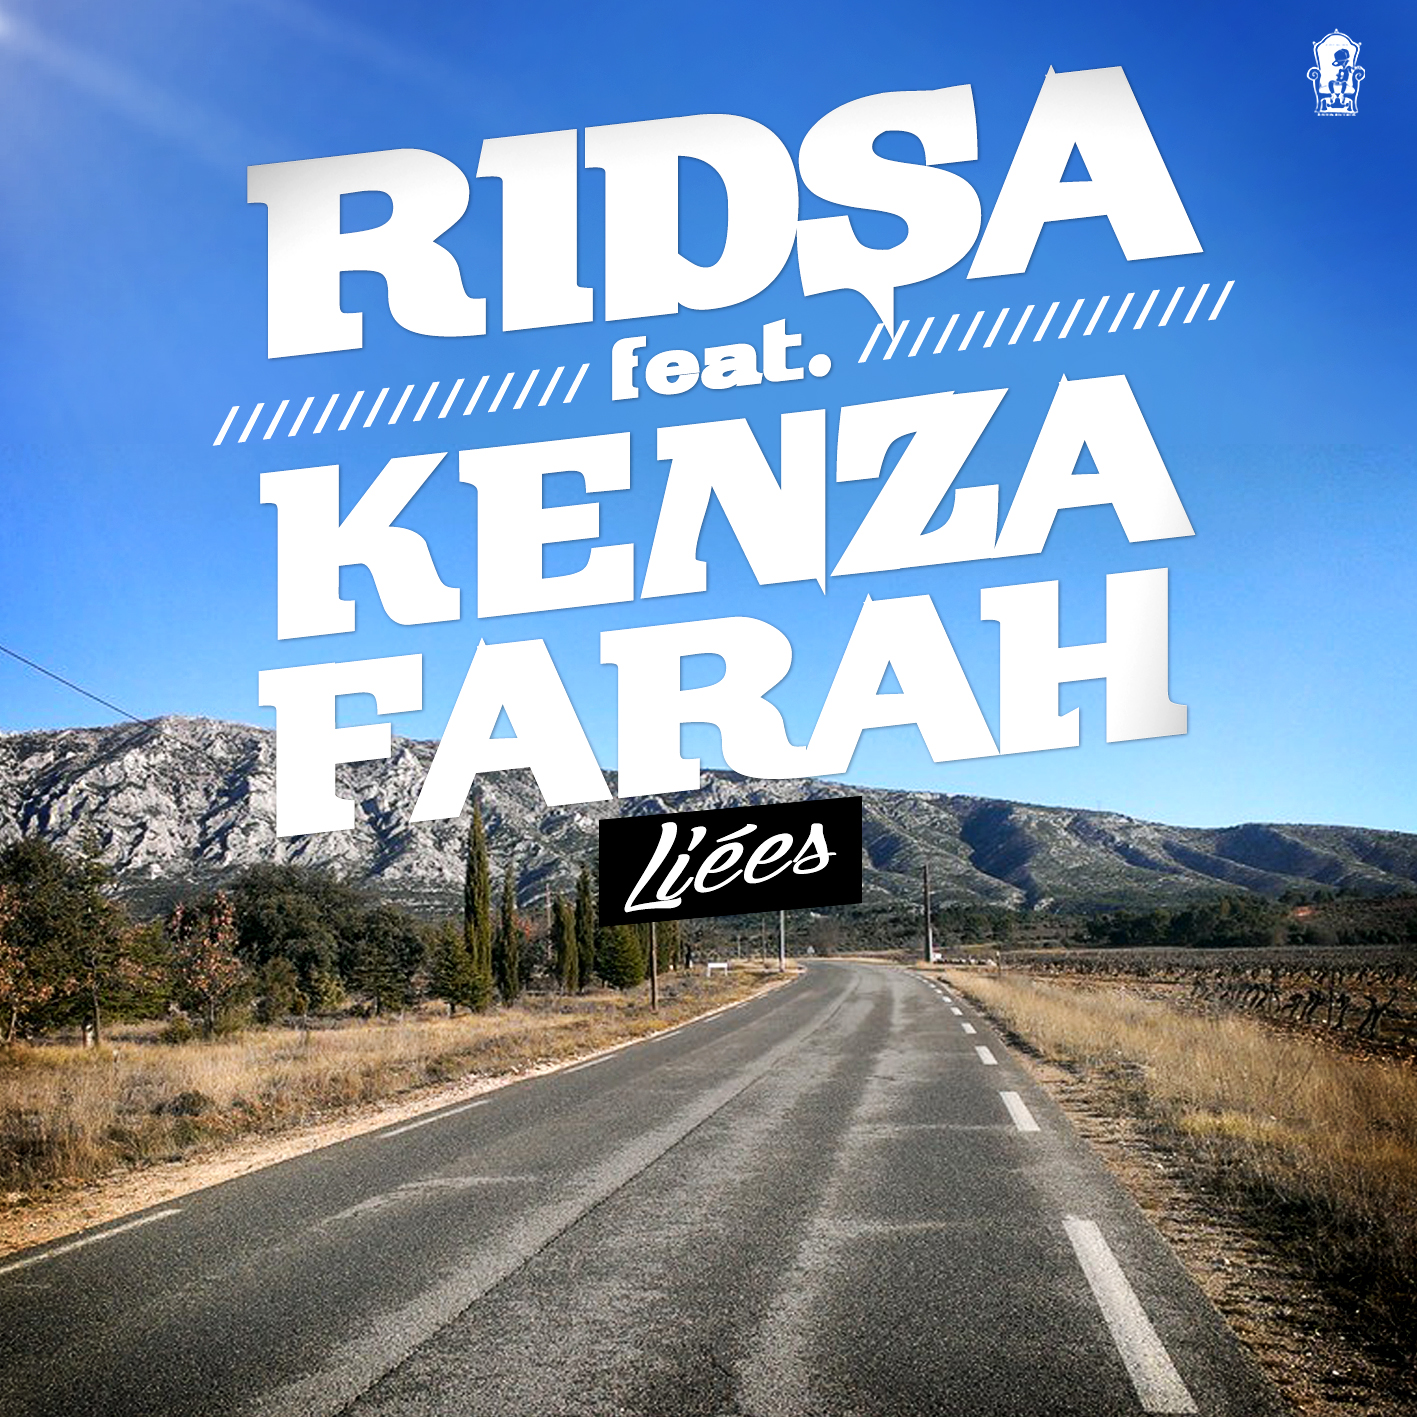 Ridsa feat kenza farah liees face